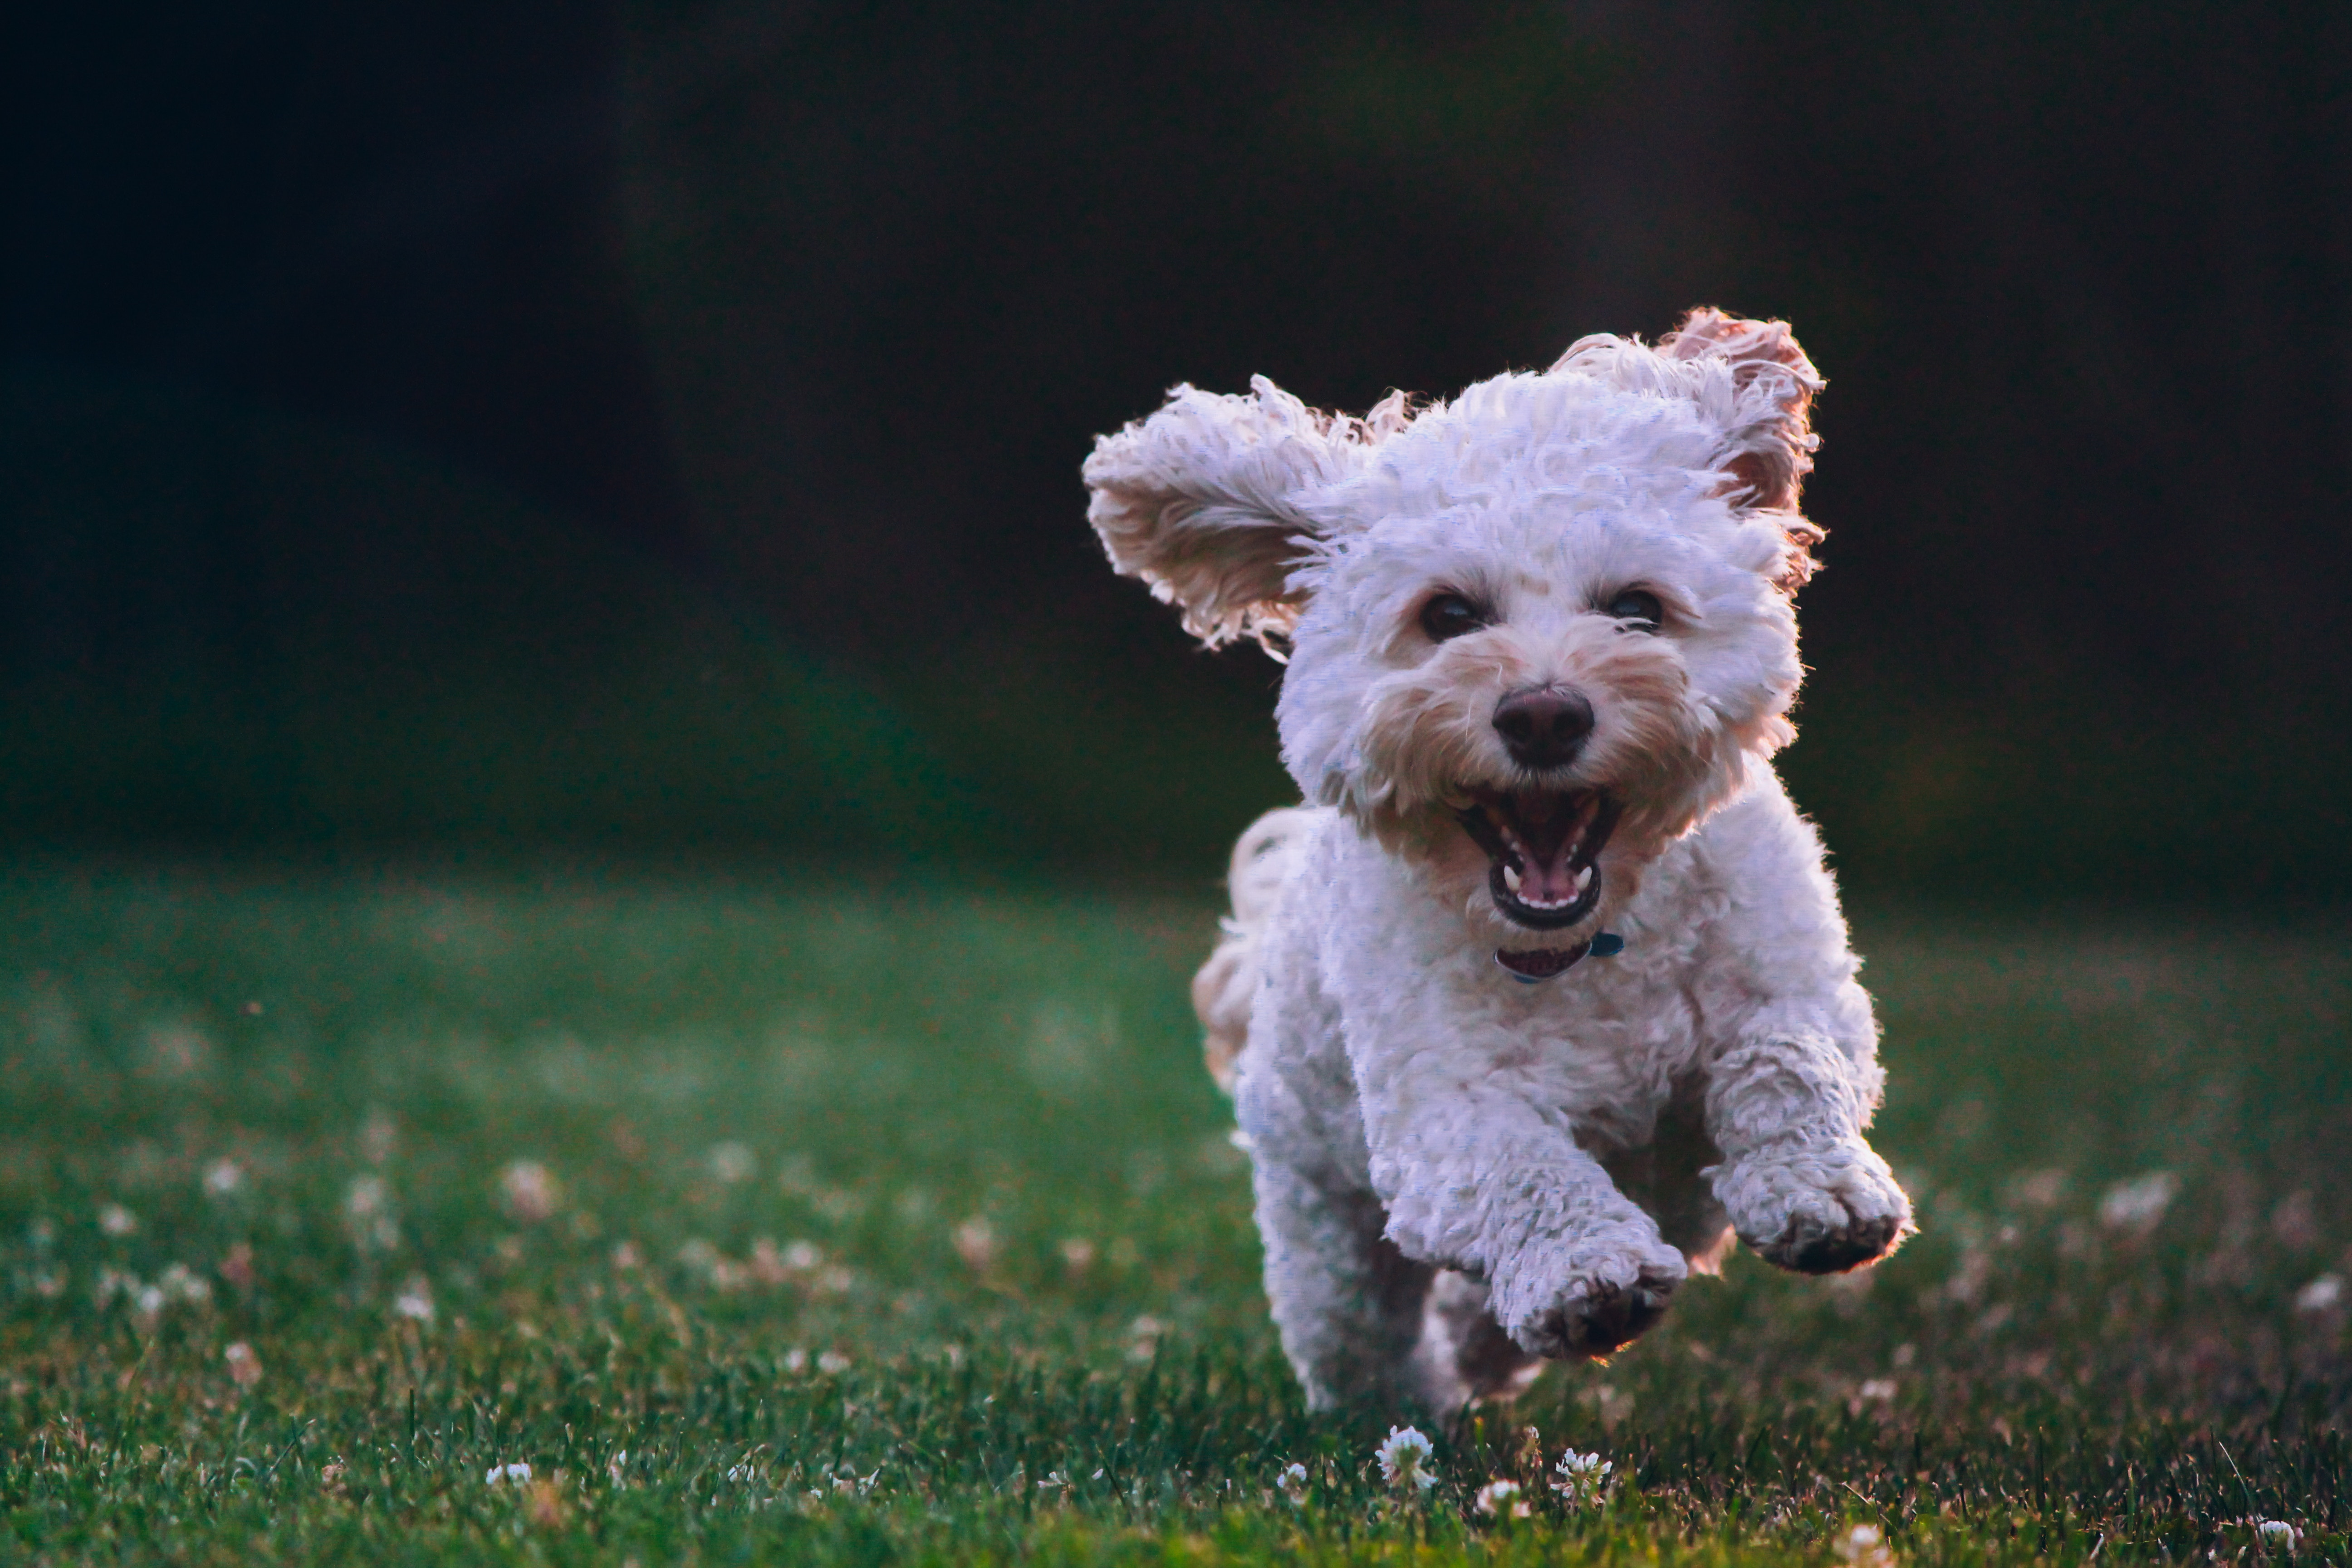 Puppy running happily